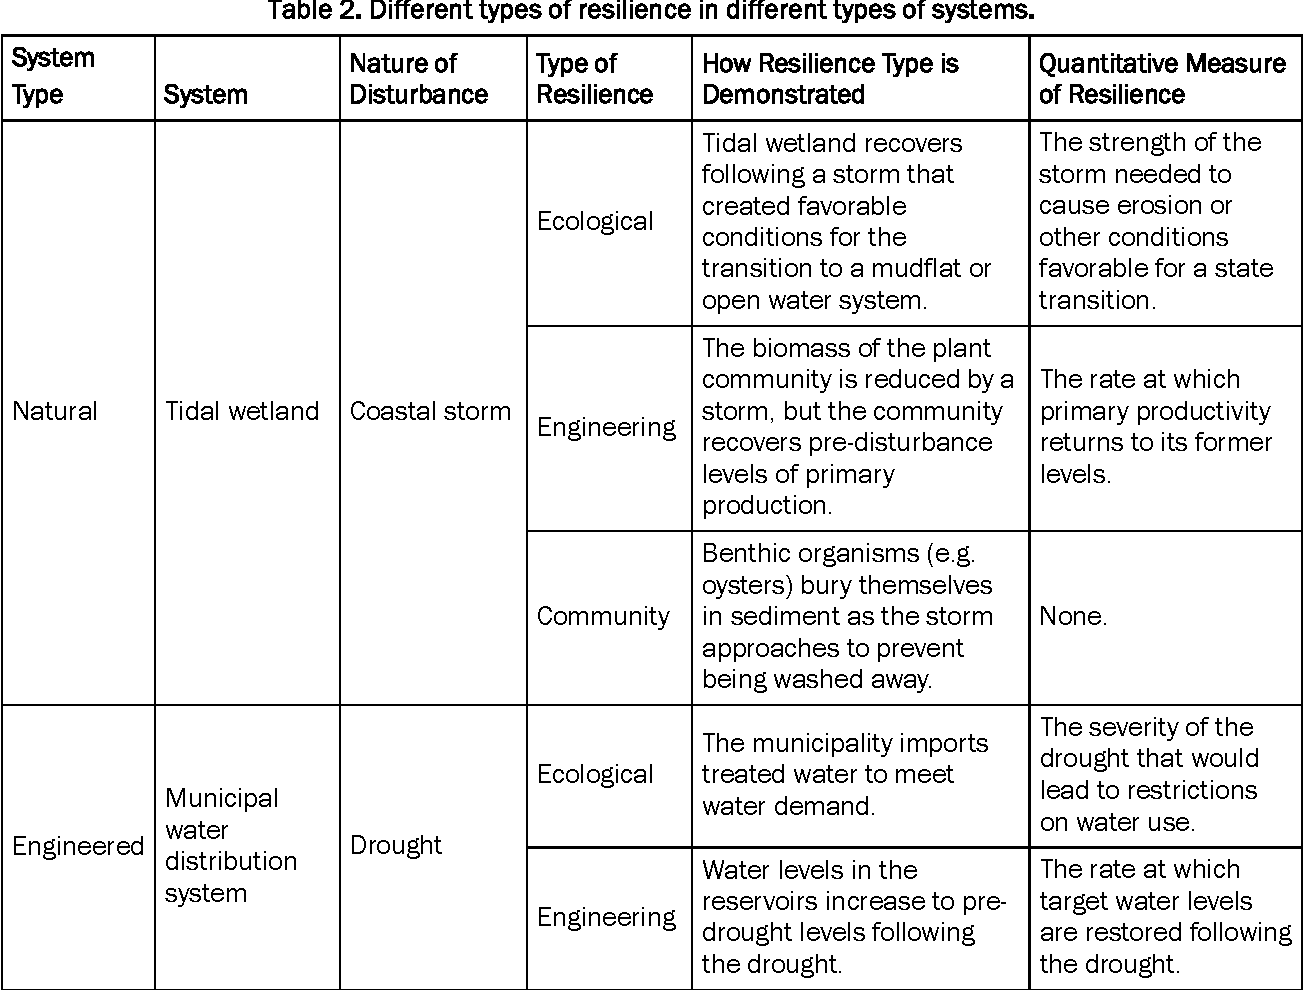 Table 2 from The Quantification and Evolution of Resilience